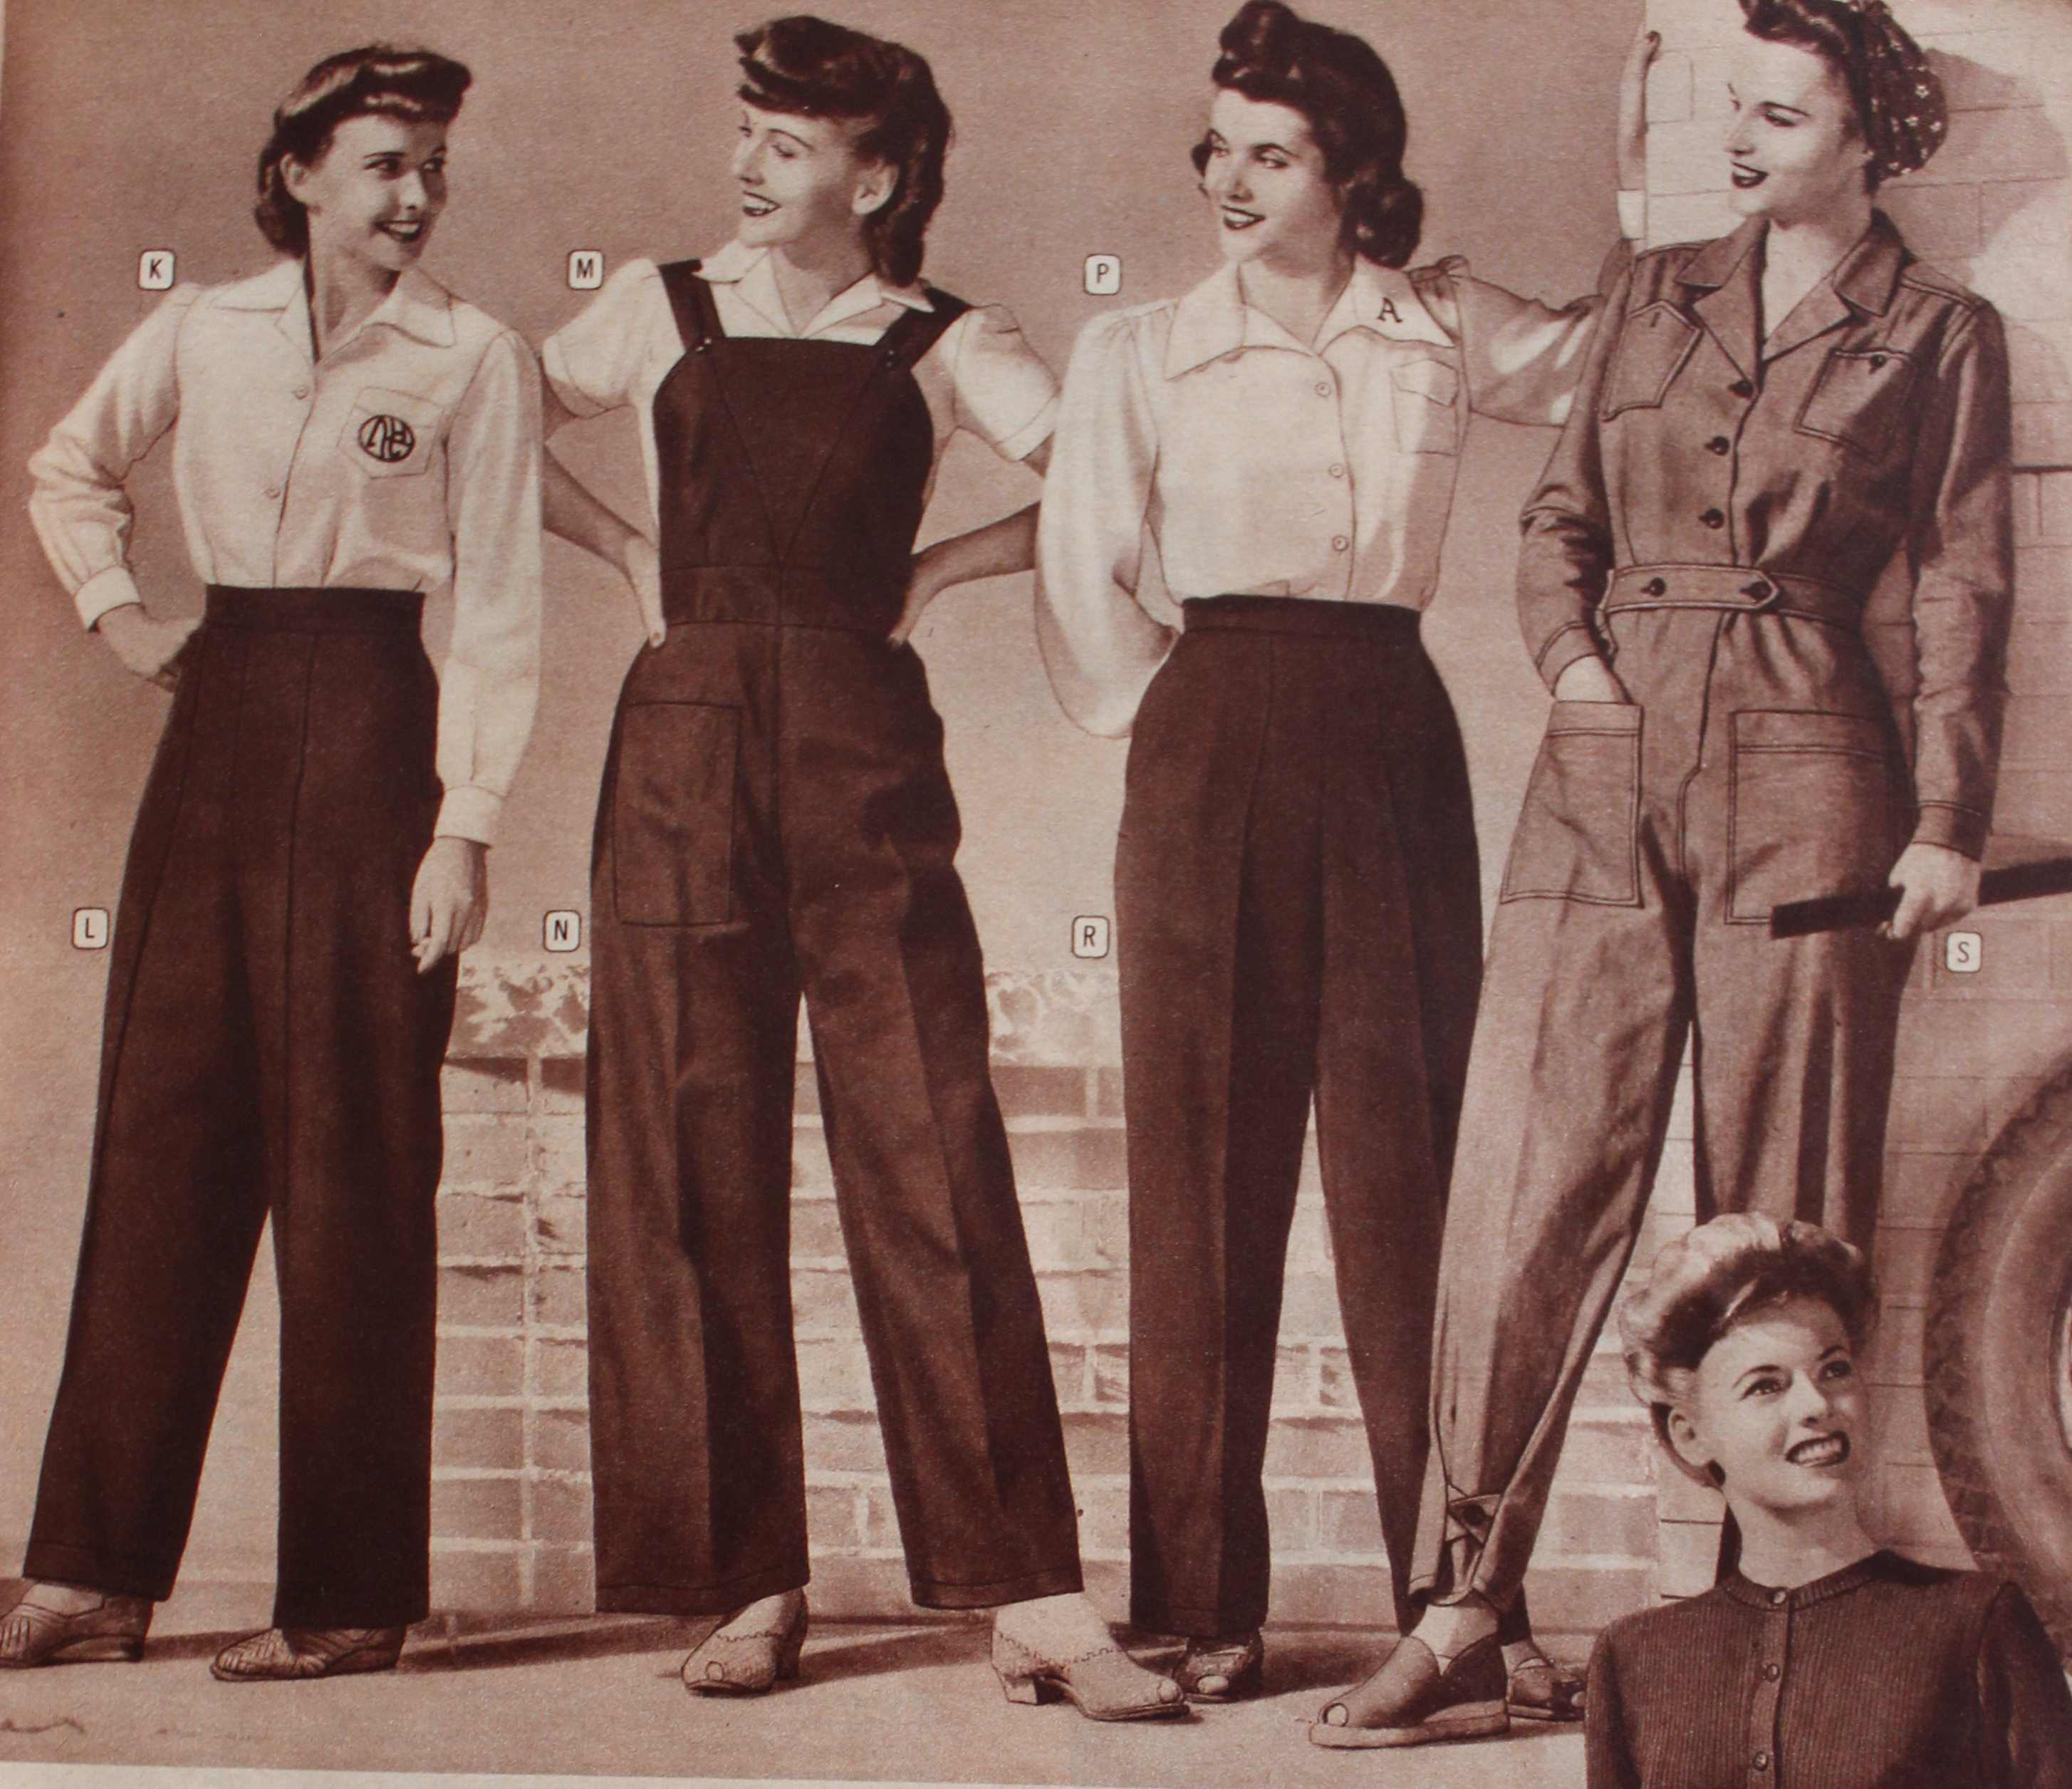 1940s fashion men and women